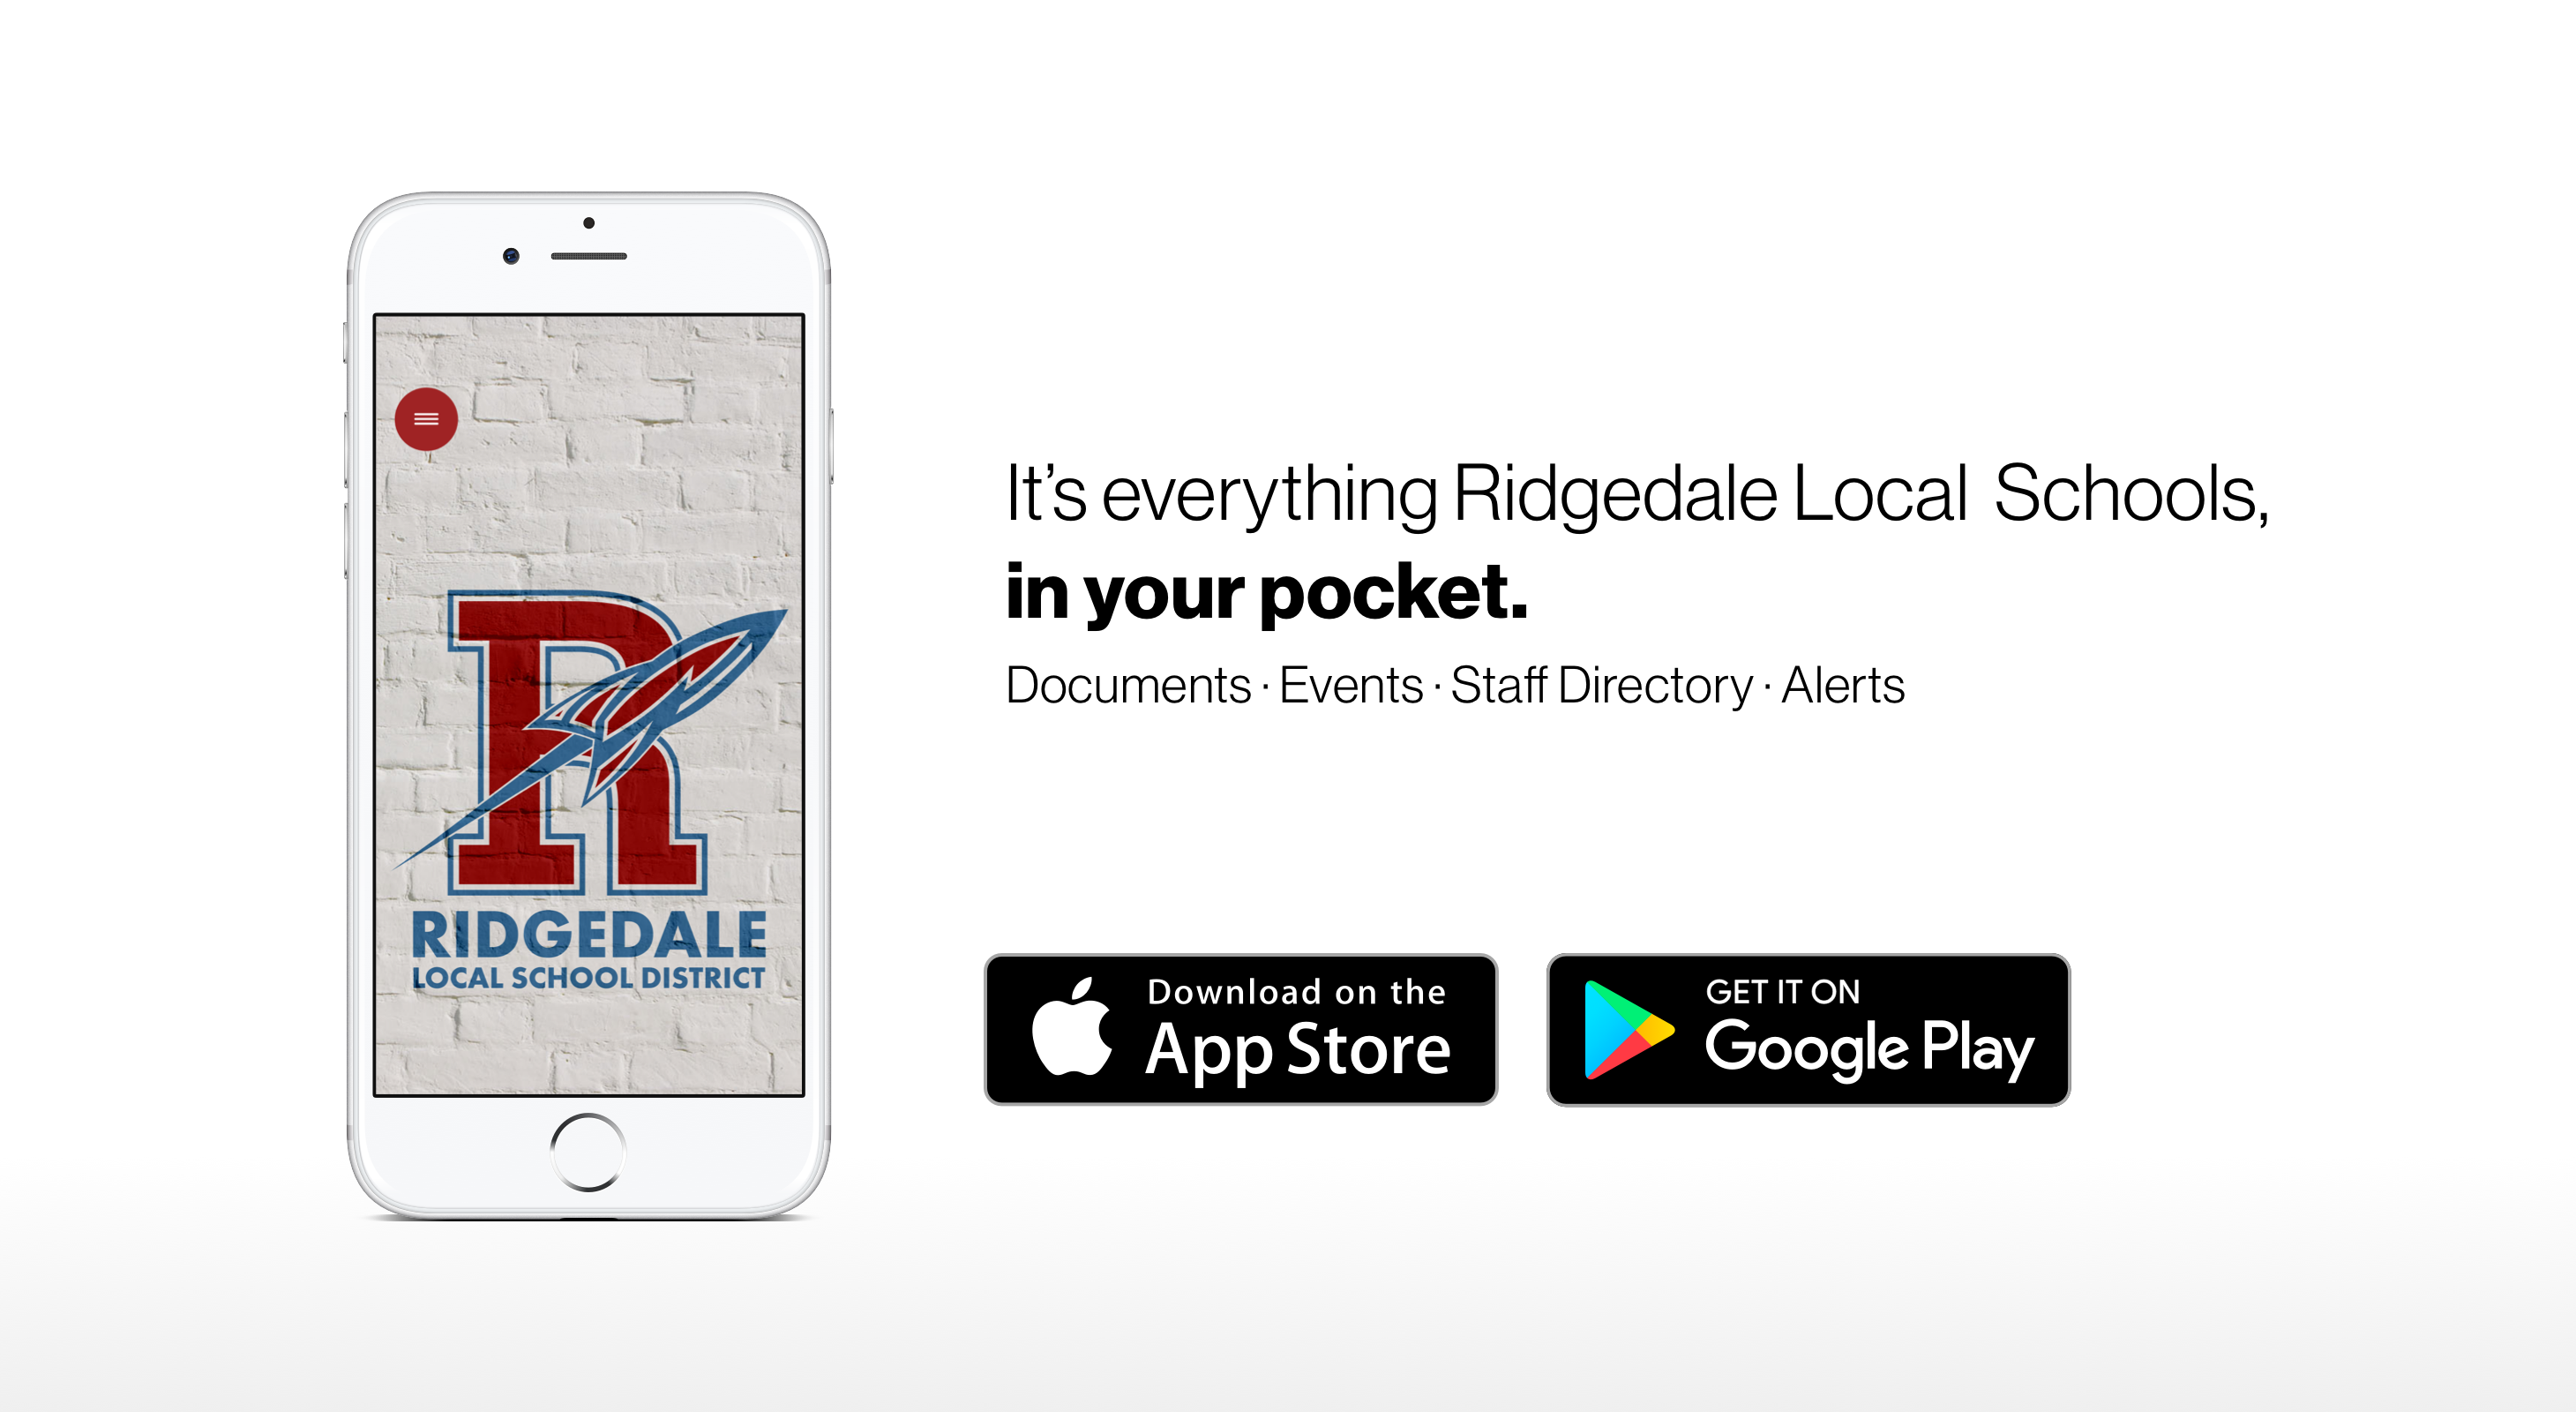 It's everything Ridgedale local Schools, in your pocket.